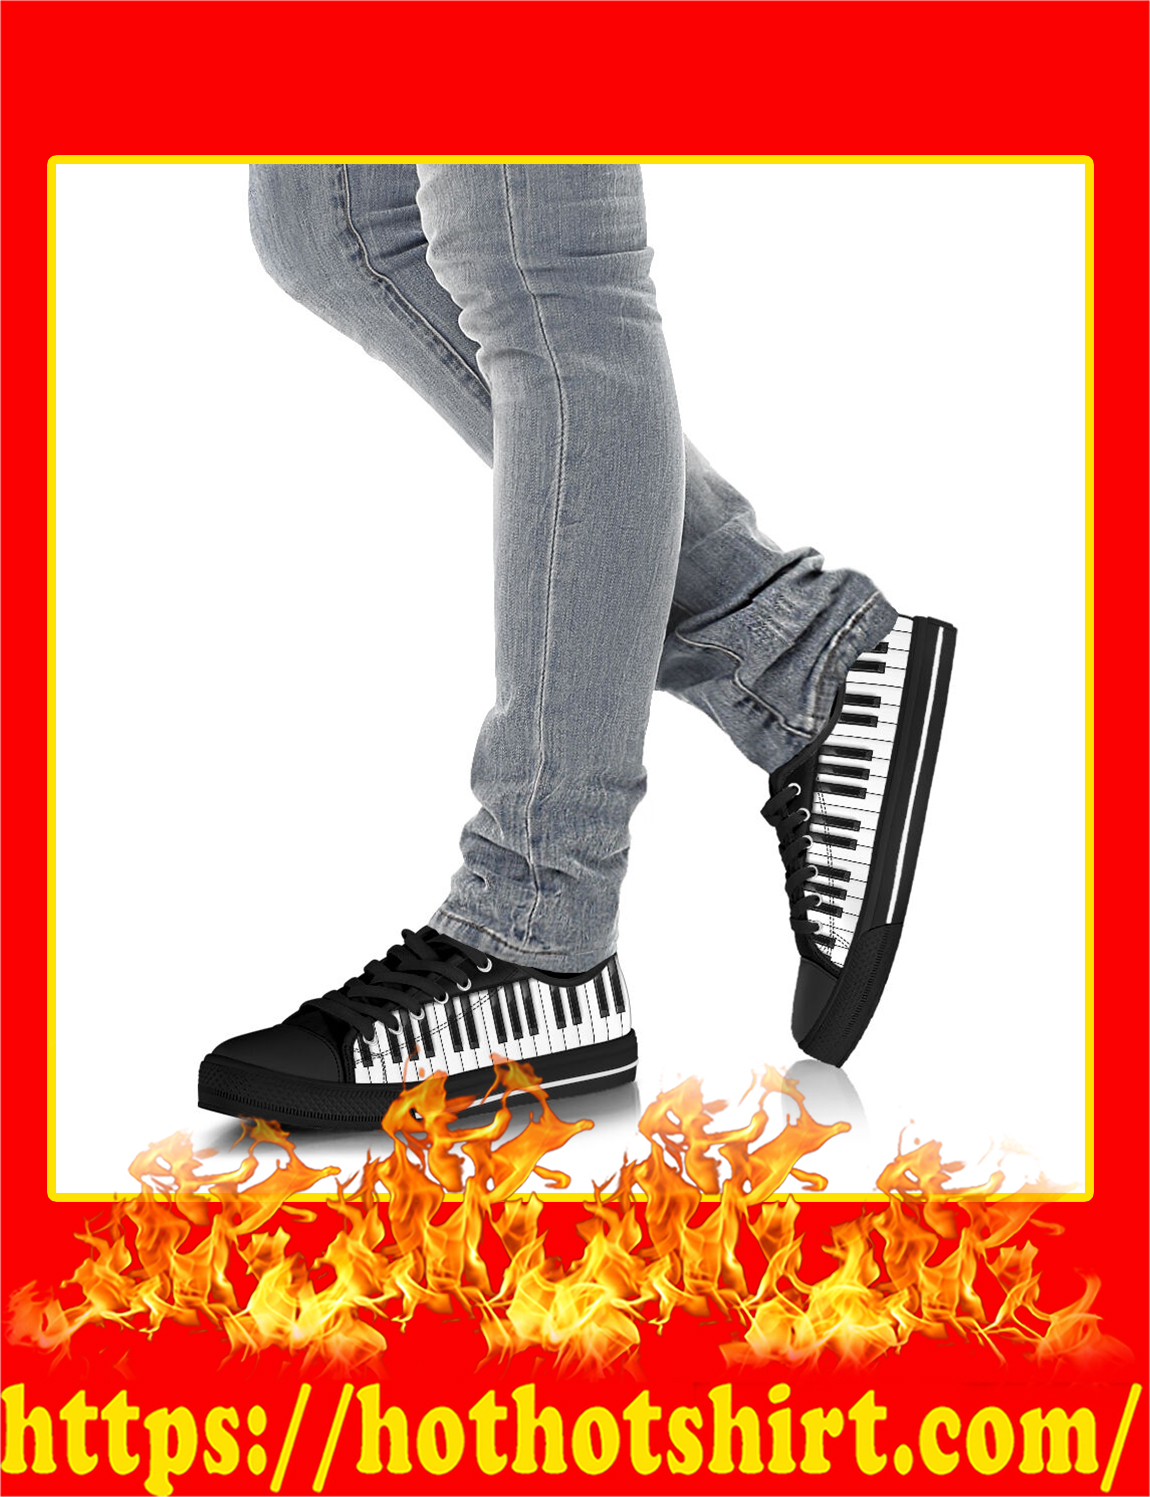 Piano Keyboard Shortcut Low Top Shoes- pic 3